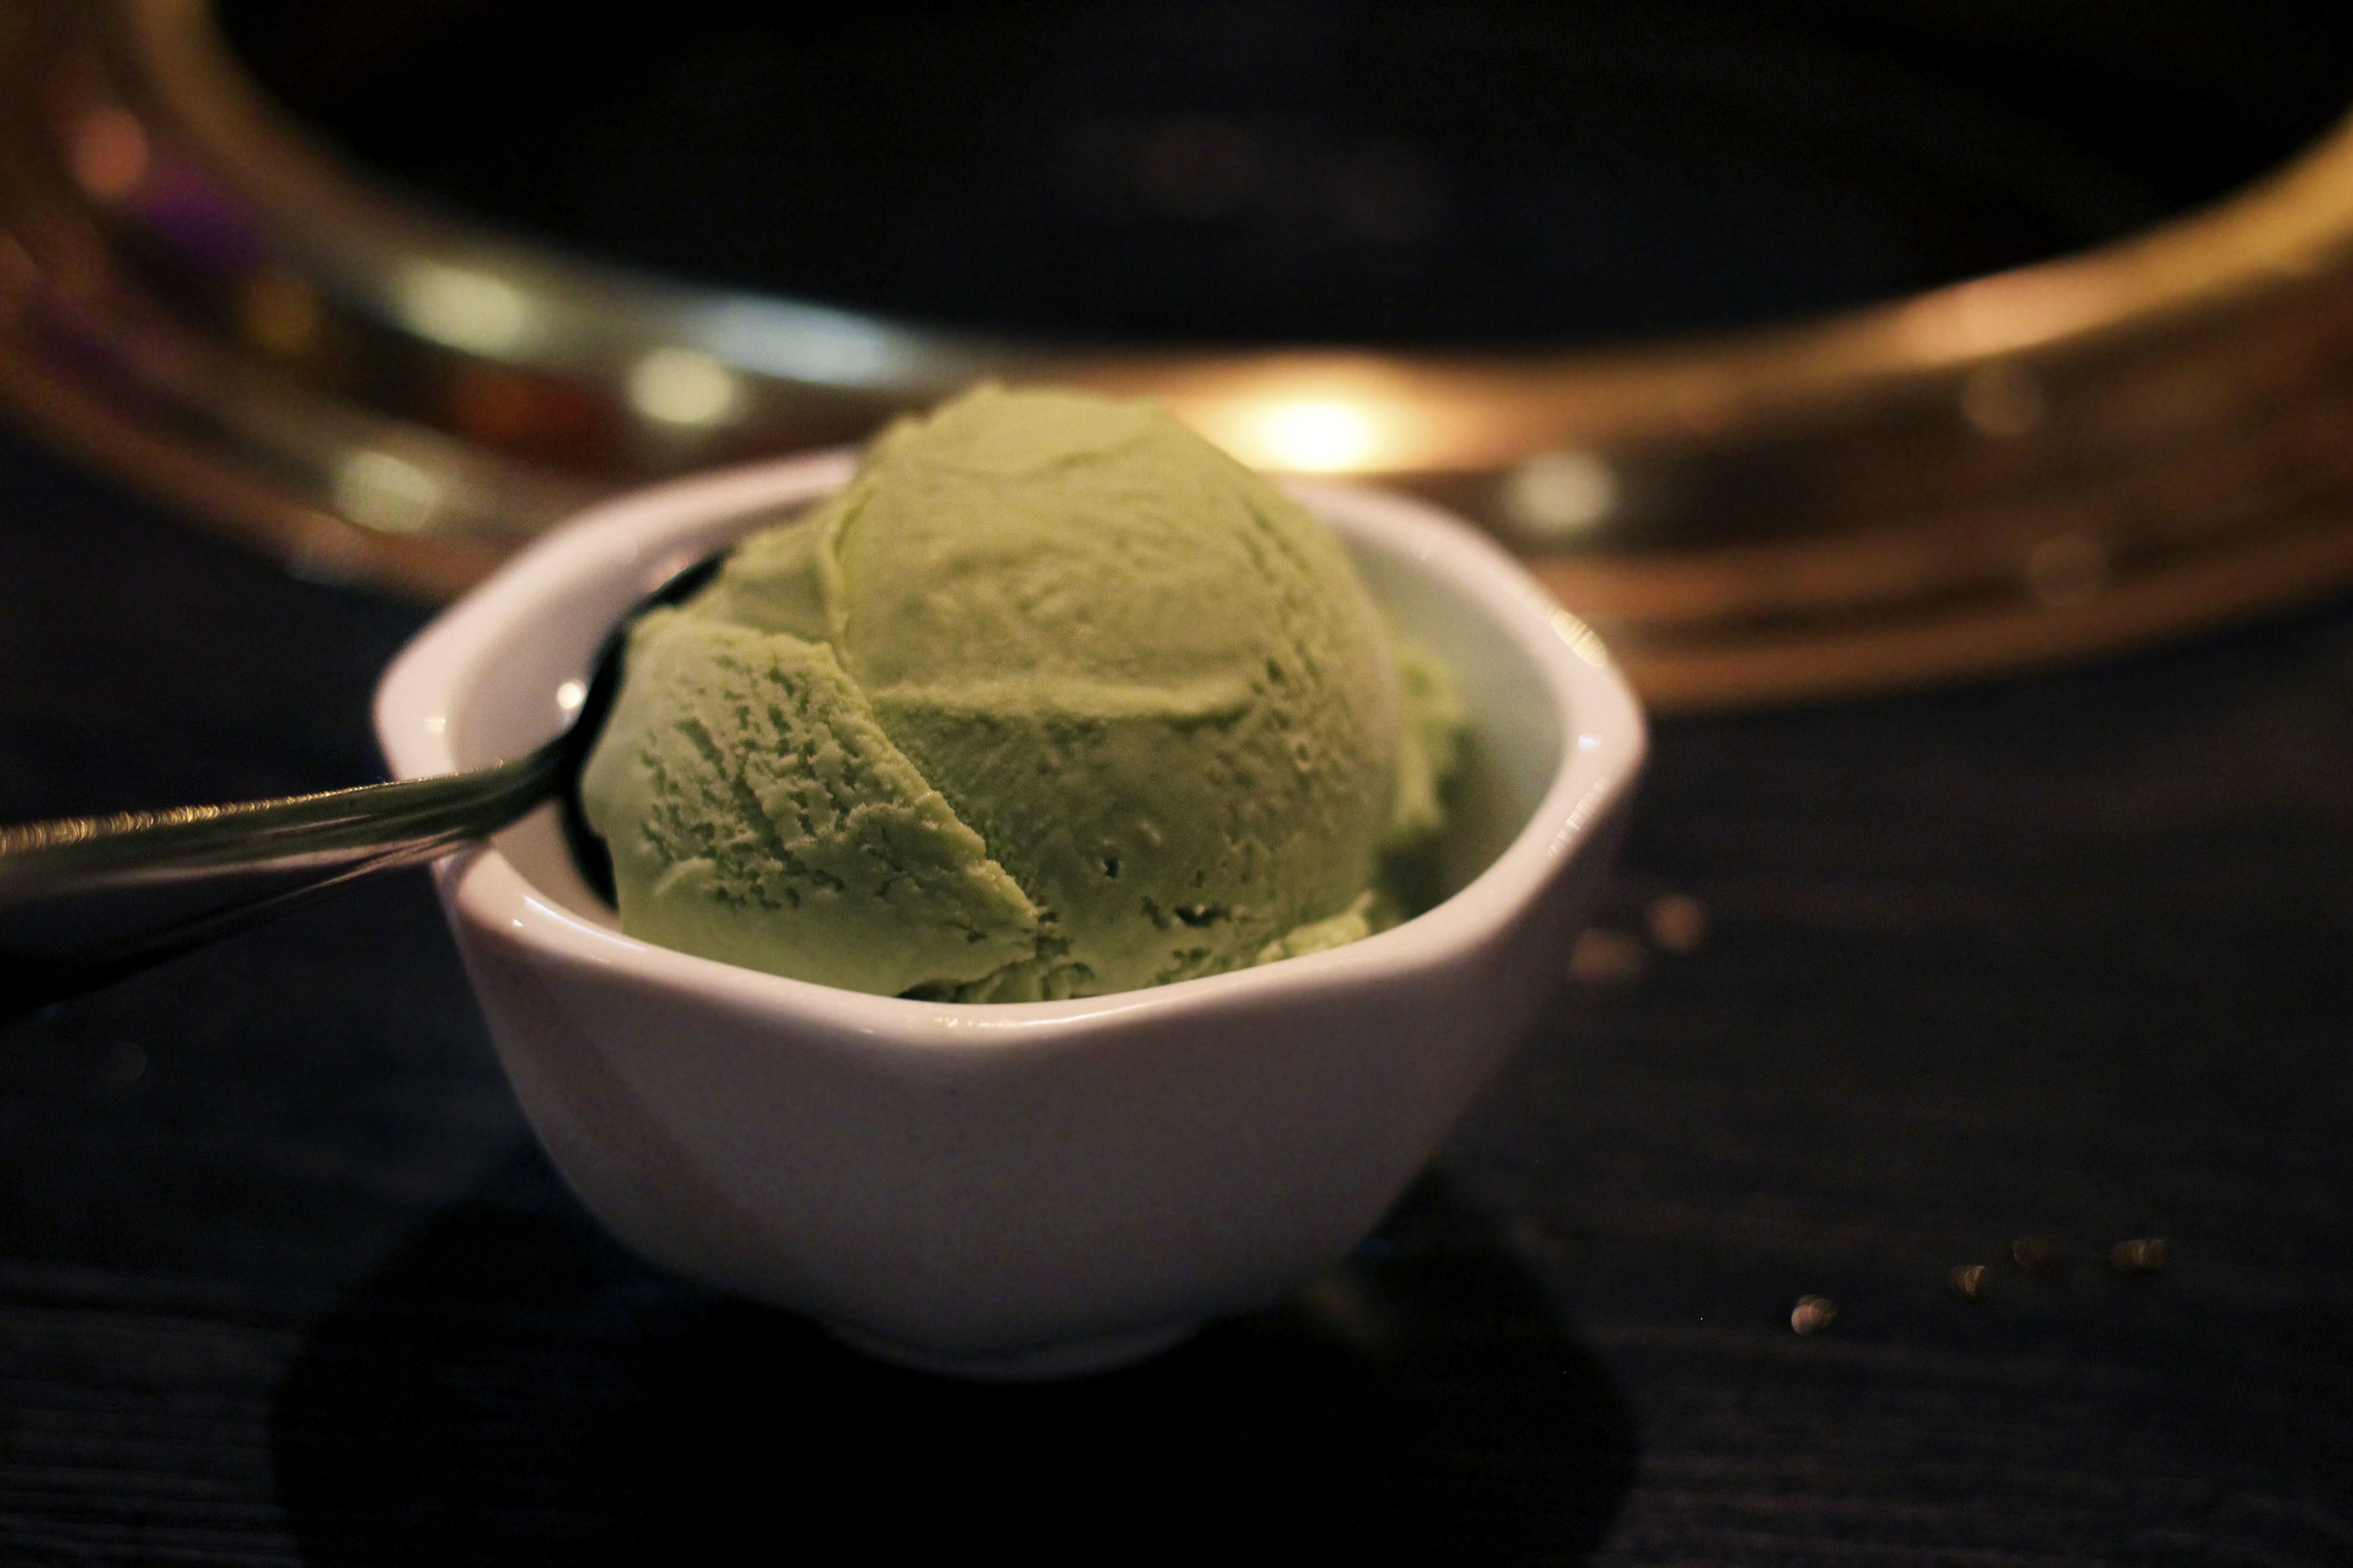 Green tea Ice cream - A generous scoop. Strong matcha flavor. Served with a hot cup of Houjicha (roasted sencha).